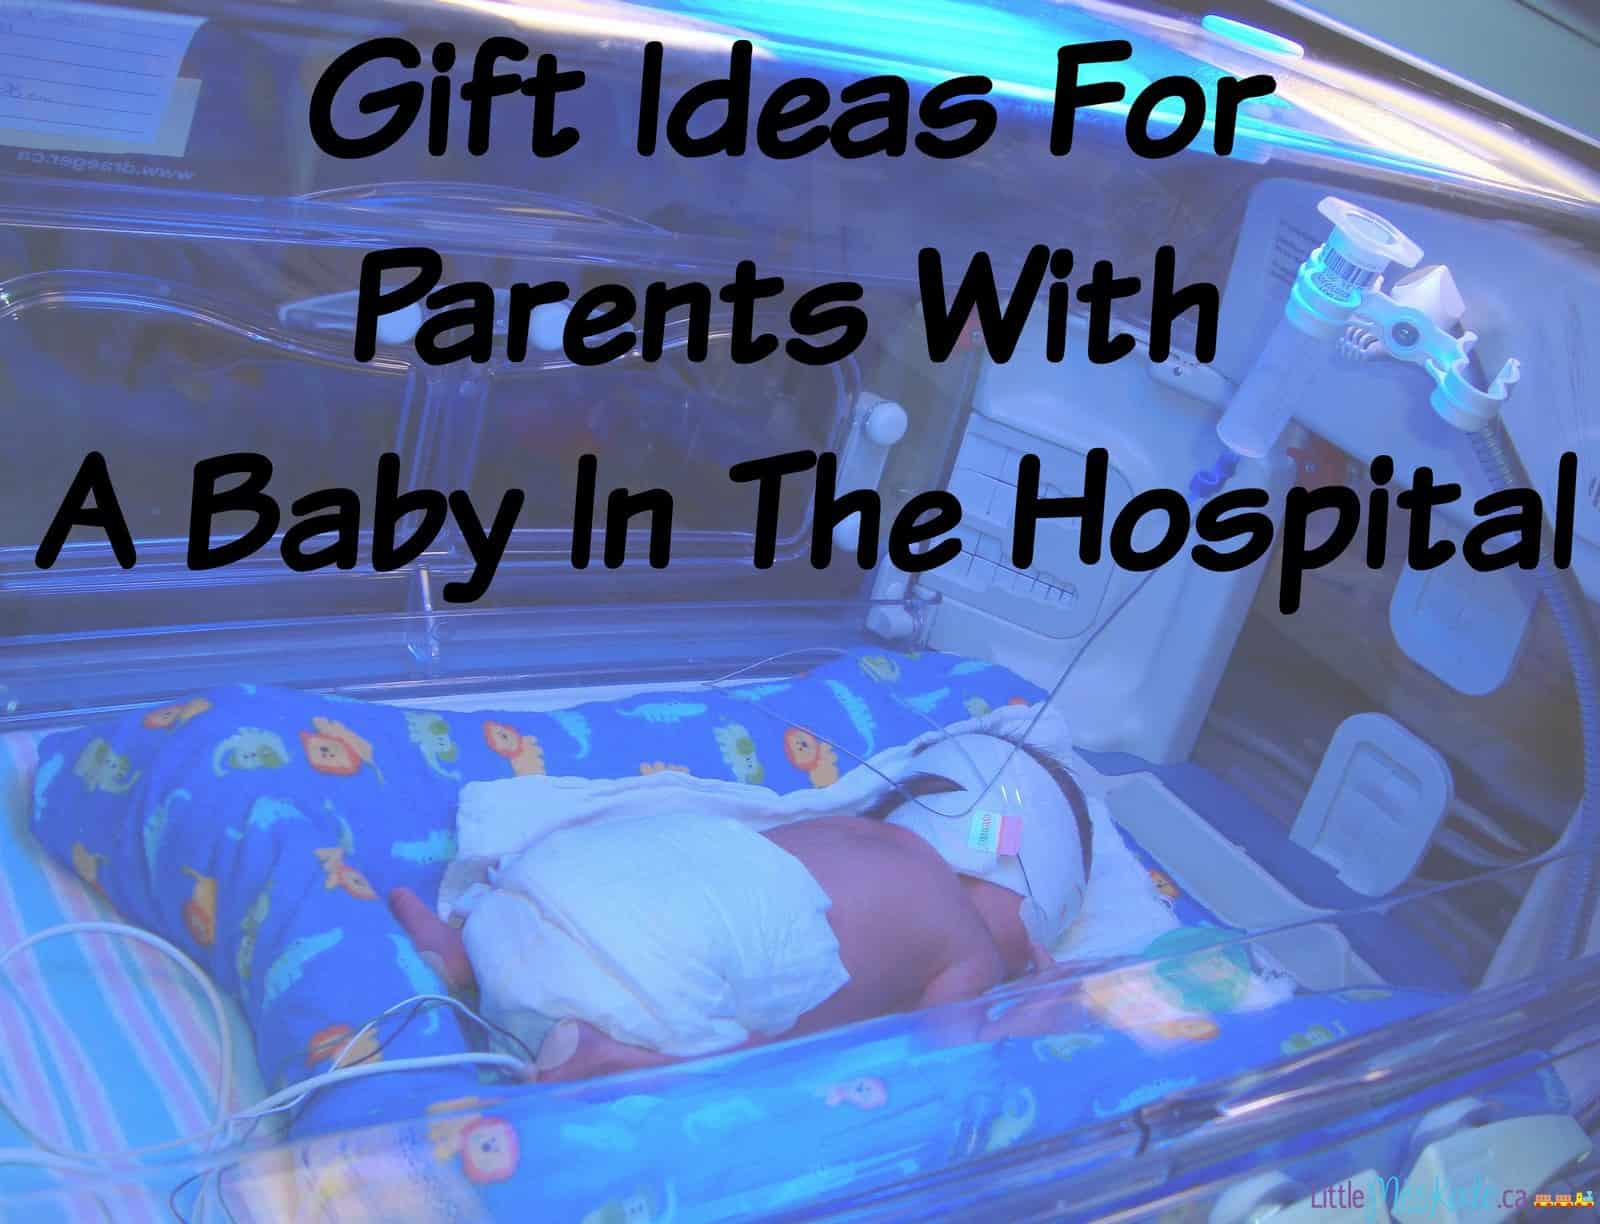 Best ideas about Www Ideas For A Gift For Family For New Baby . Save or Pin Gift Ideas For Parents With A Baby In The Hospital Now.